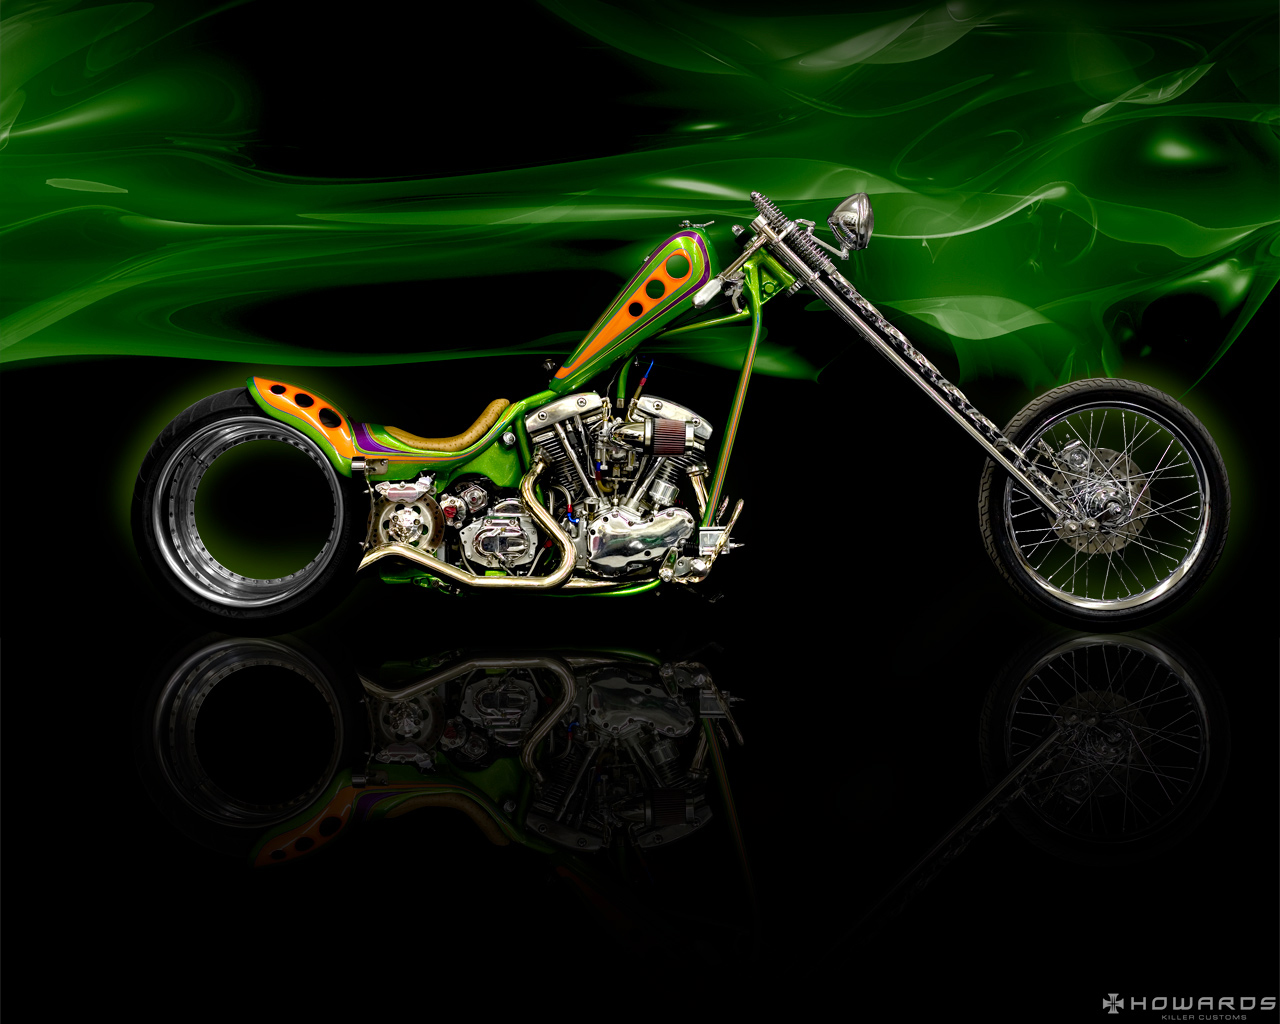 Bike Wallpapers Mobile Wallpapers Pc Wallpapers Wallpapers Mobile Themes Pc Themes 1e